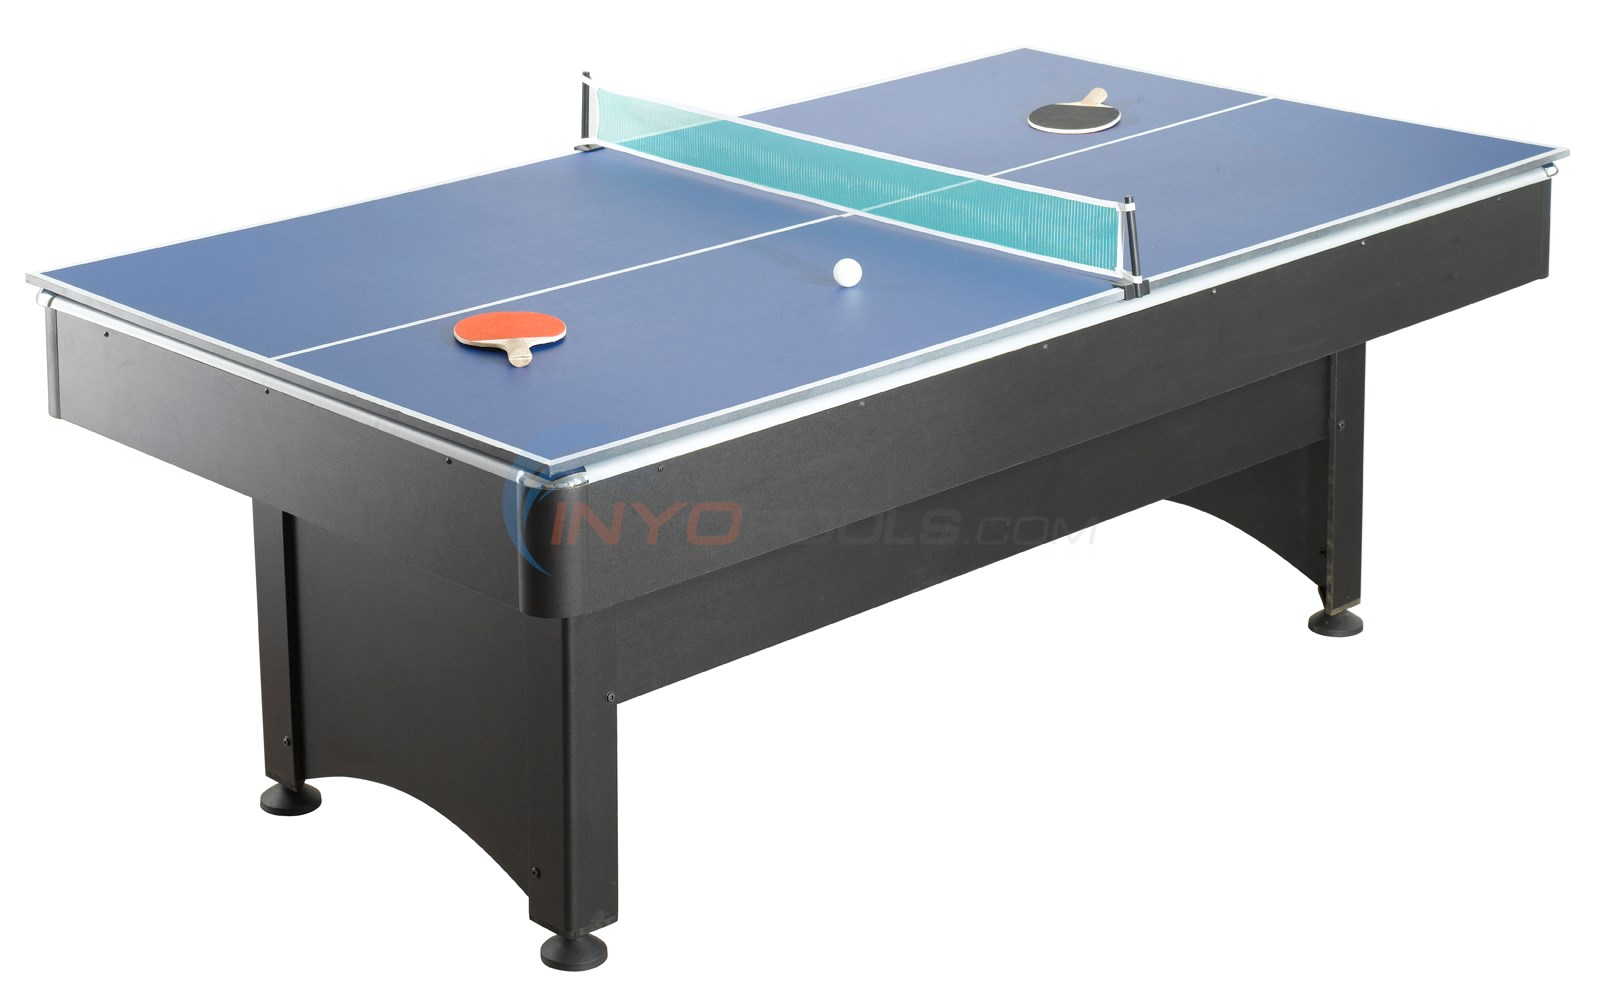 Pool Table with Table Tennis 7'